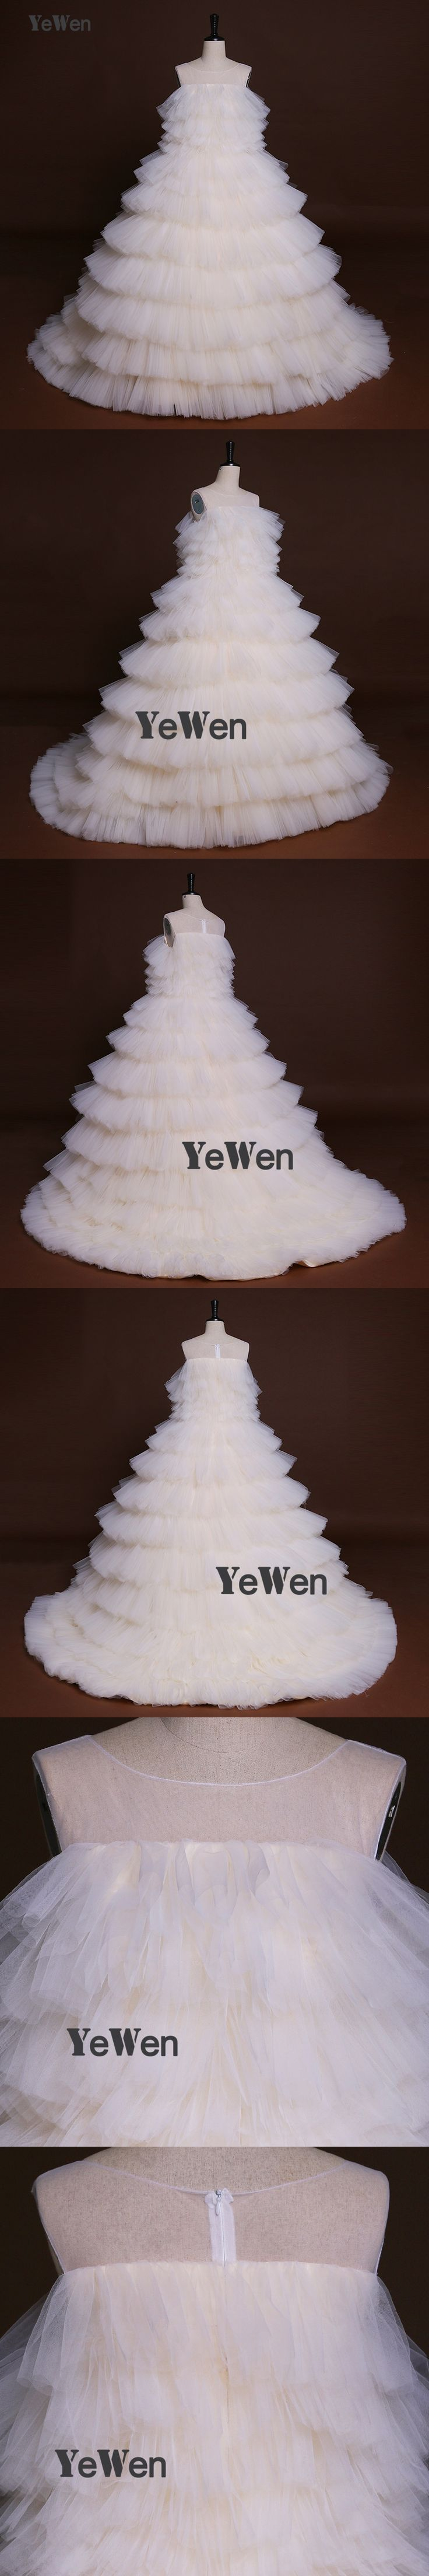 Ice Cream Color Tulle Elegant Ball gown Evening Dress 2017 Long Zipper YeWen Tiered Ruched Party Prom gown Formal dresses